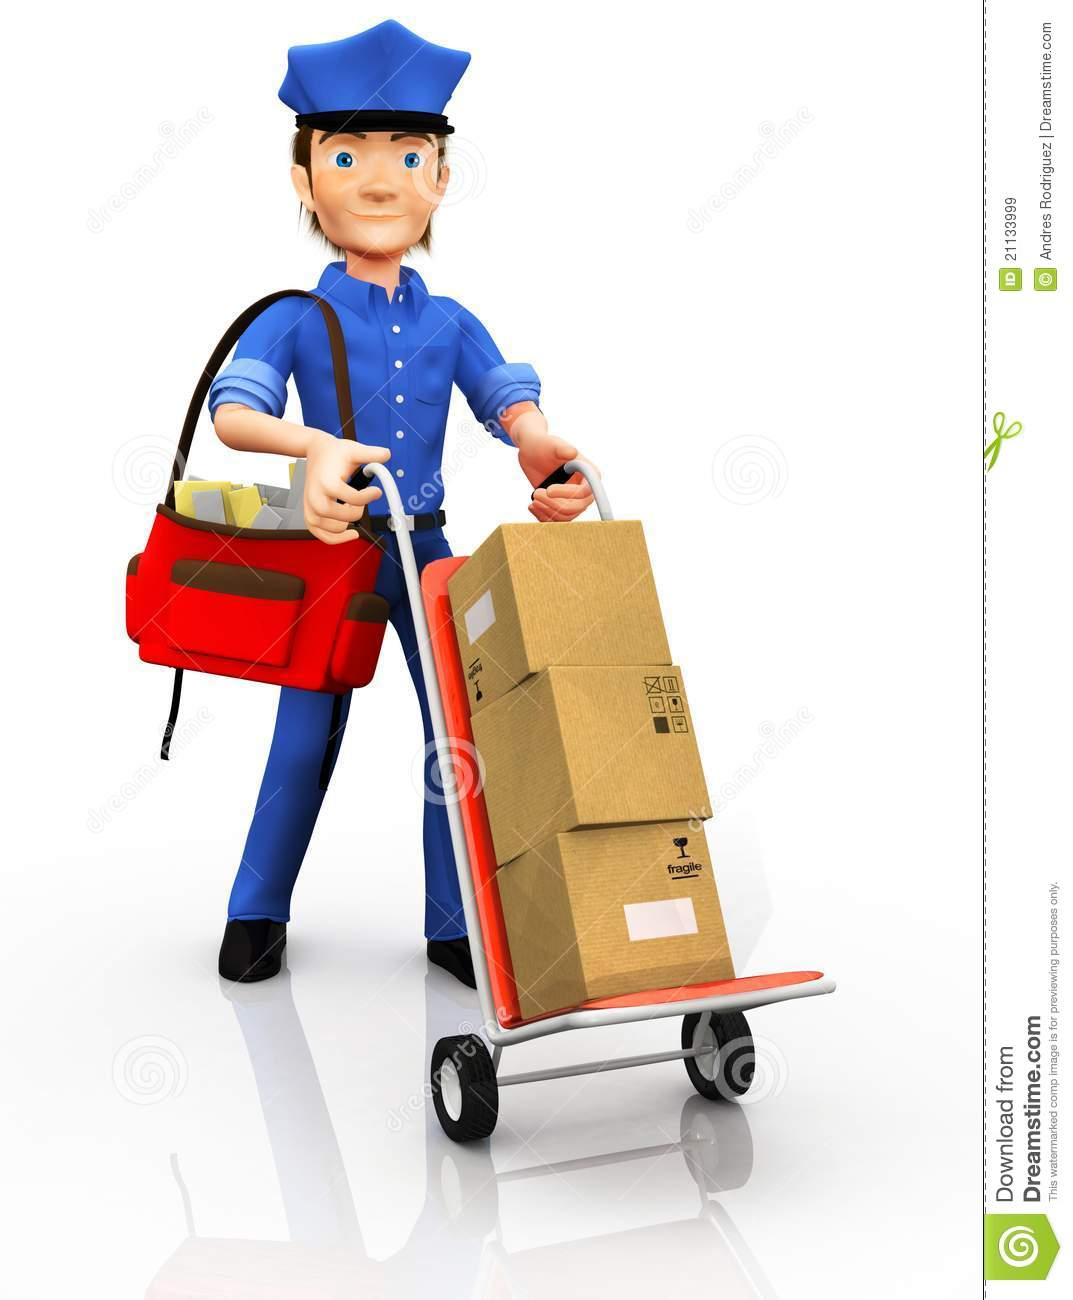 3D Mailman Royalty Free Stock Images - Image: 21133999